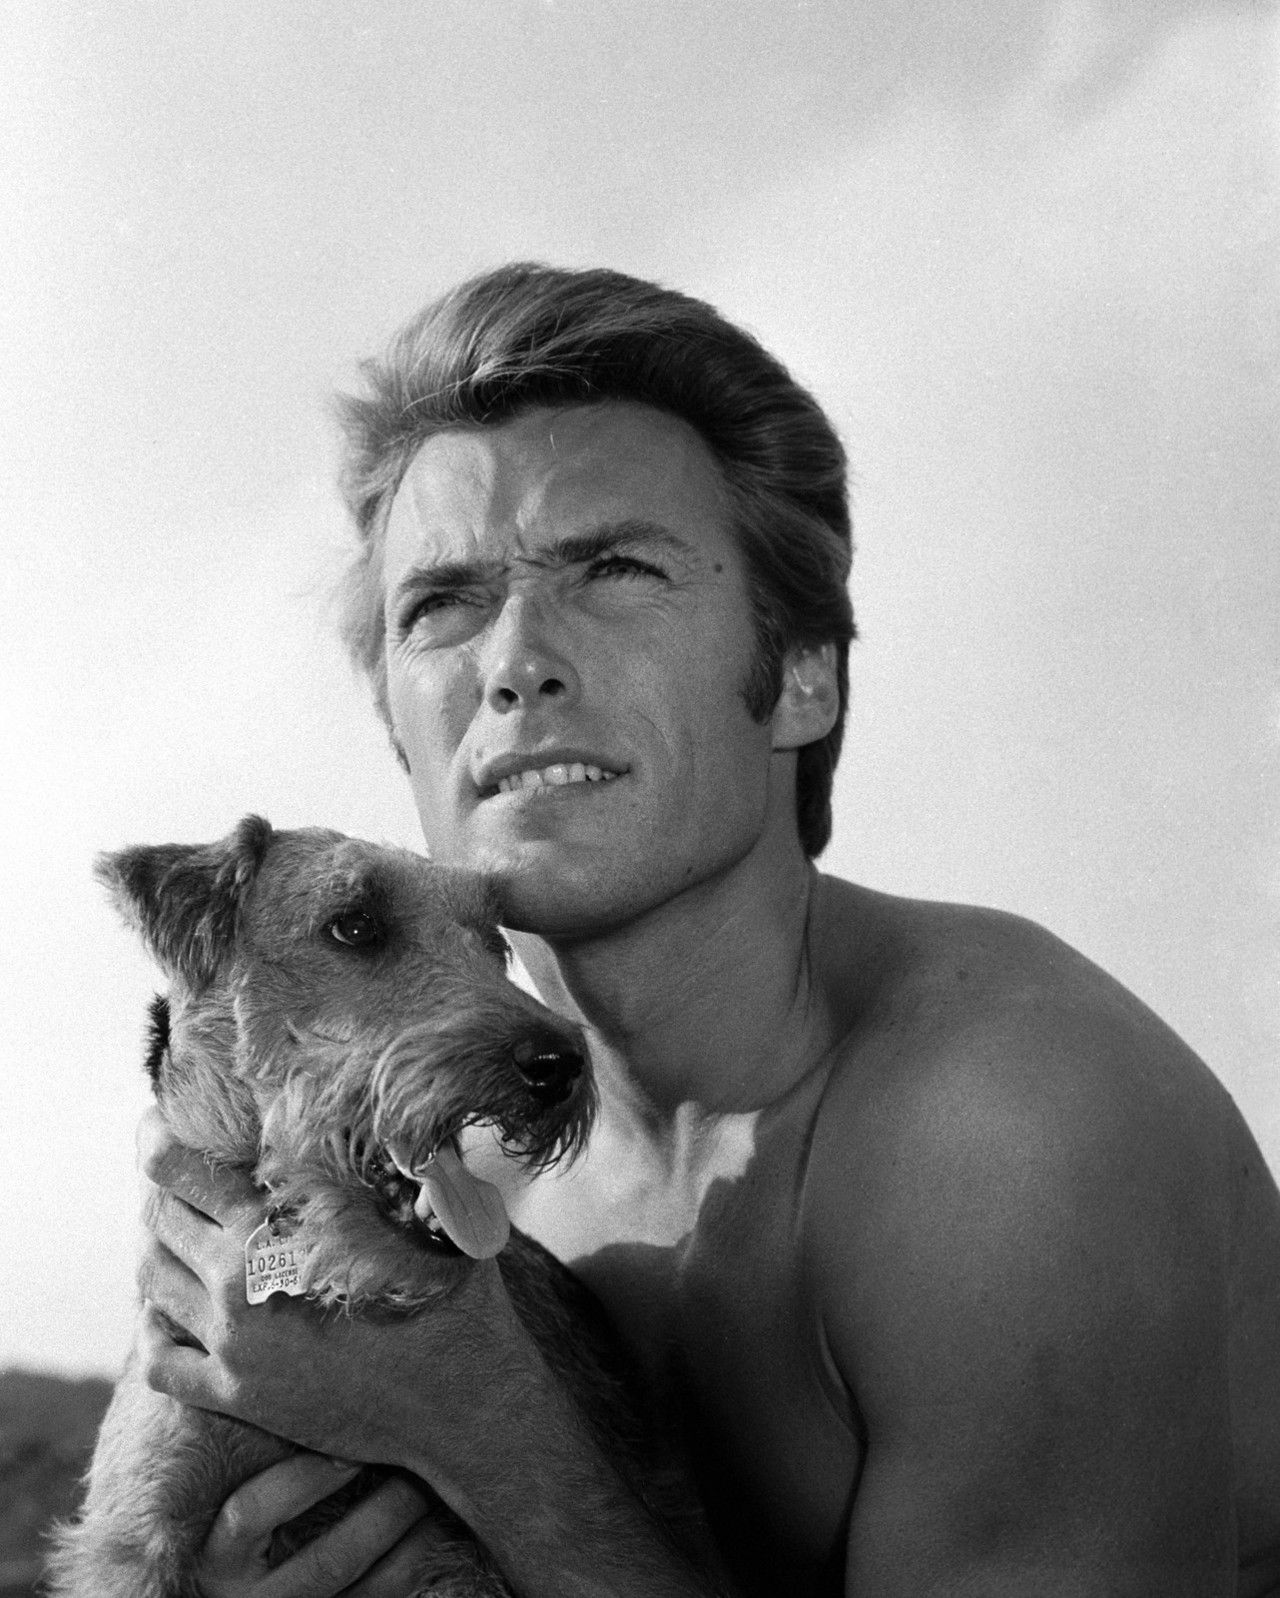 Clint Eastwood with his dog. You don't see too many actors